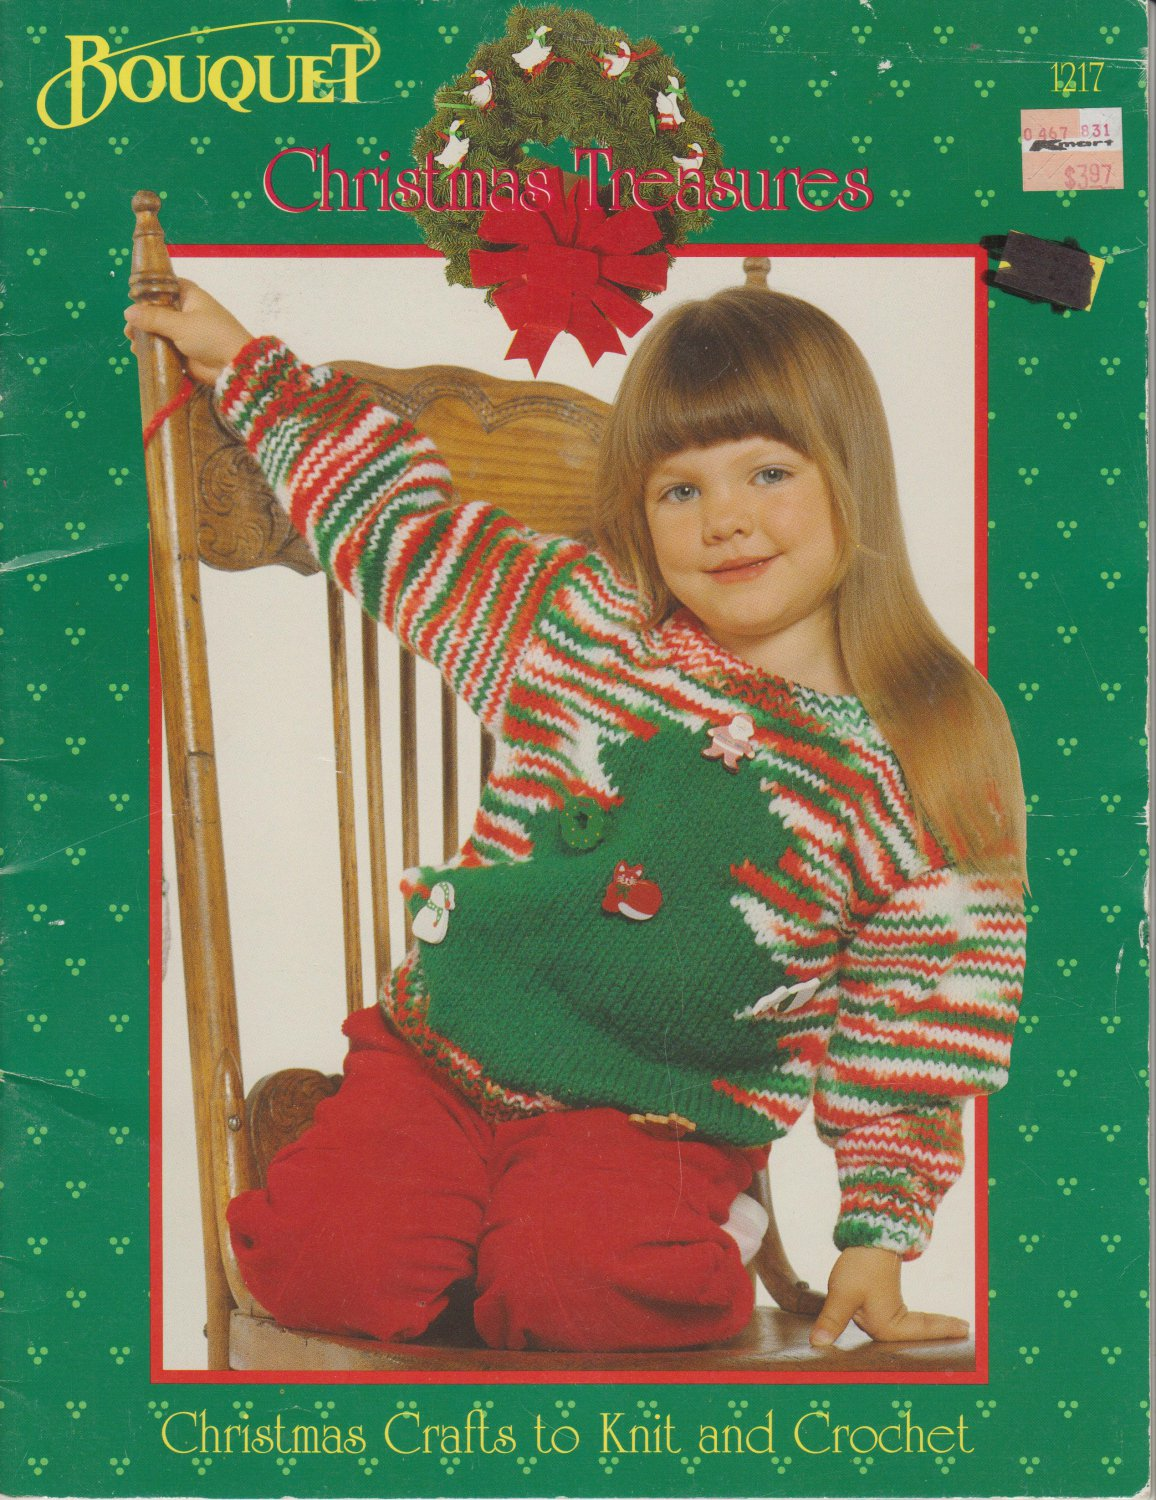 Bouquet Christmas Treasures Patterns #1217 Christmas Crafts to Knit and Crochet